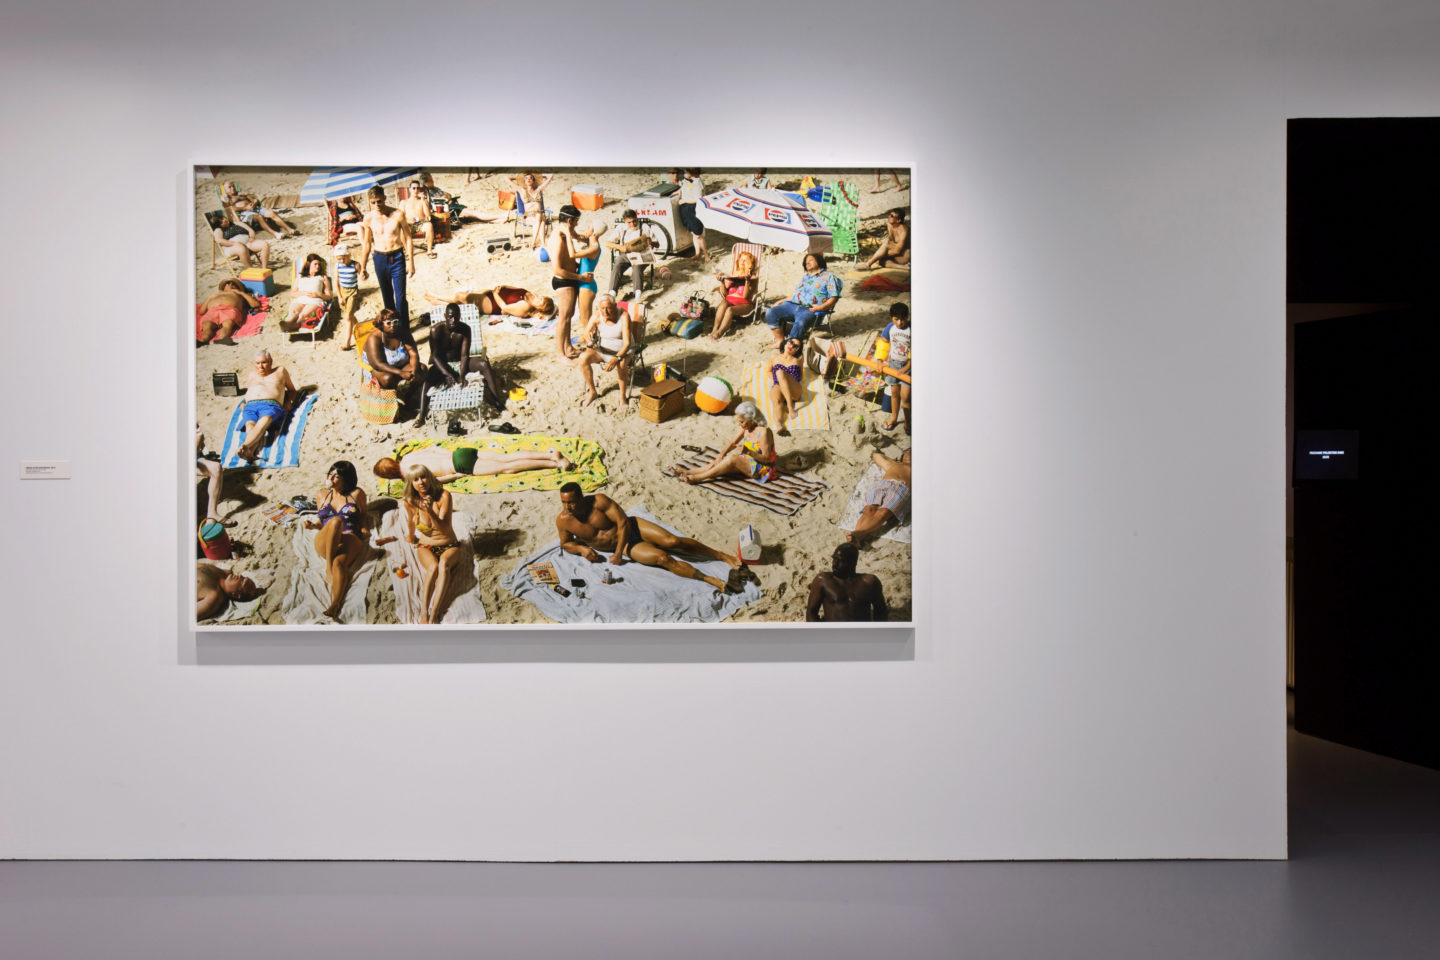 Exhibition View Alex Prager «Silver Lake Drive» at MBAL, Le Locle / Photo: Lionel Henriod / © 2018, Musée des beaux-arts, Le Locle